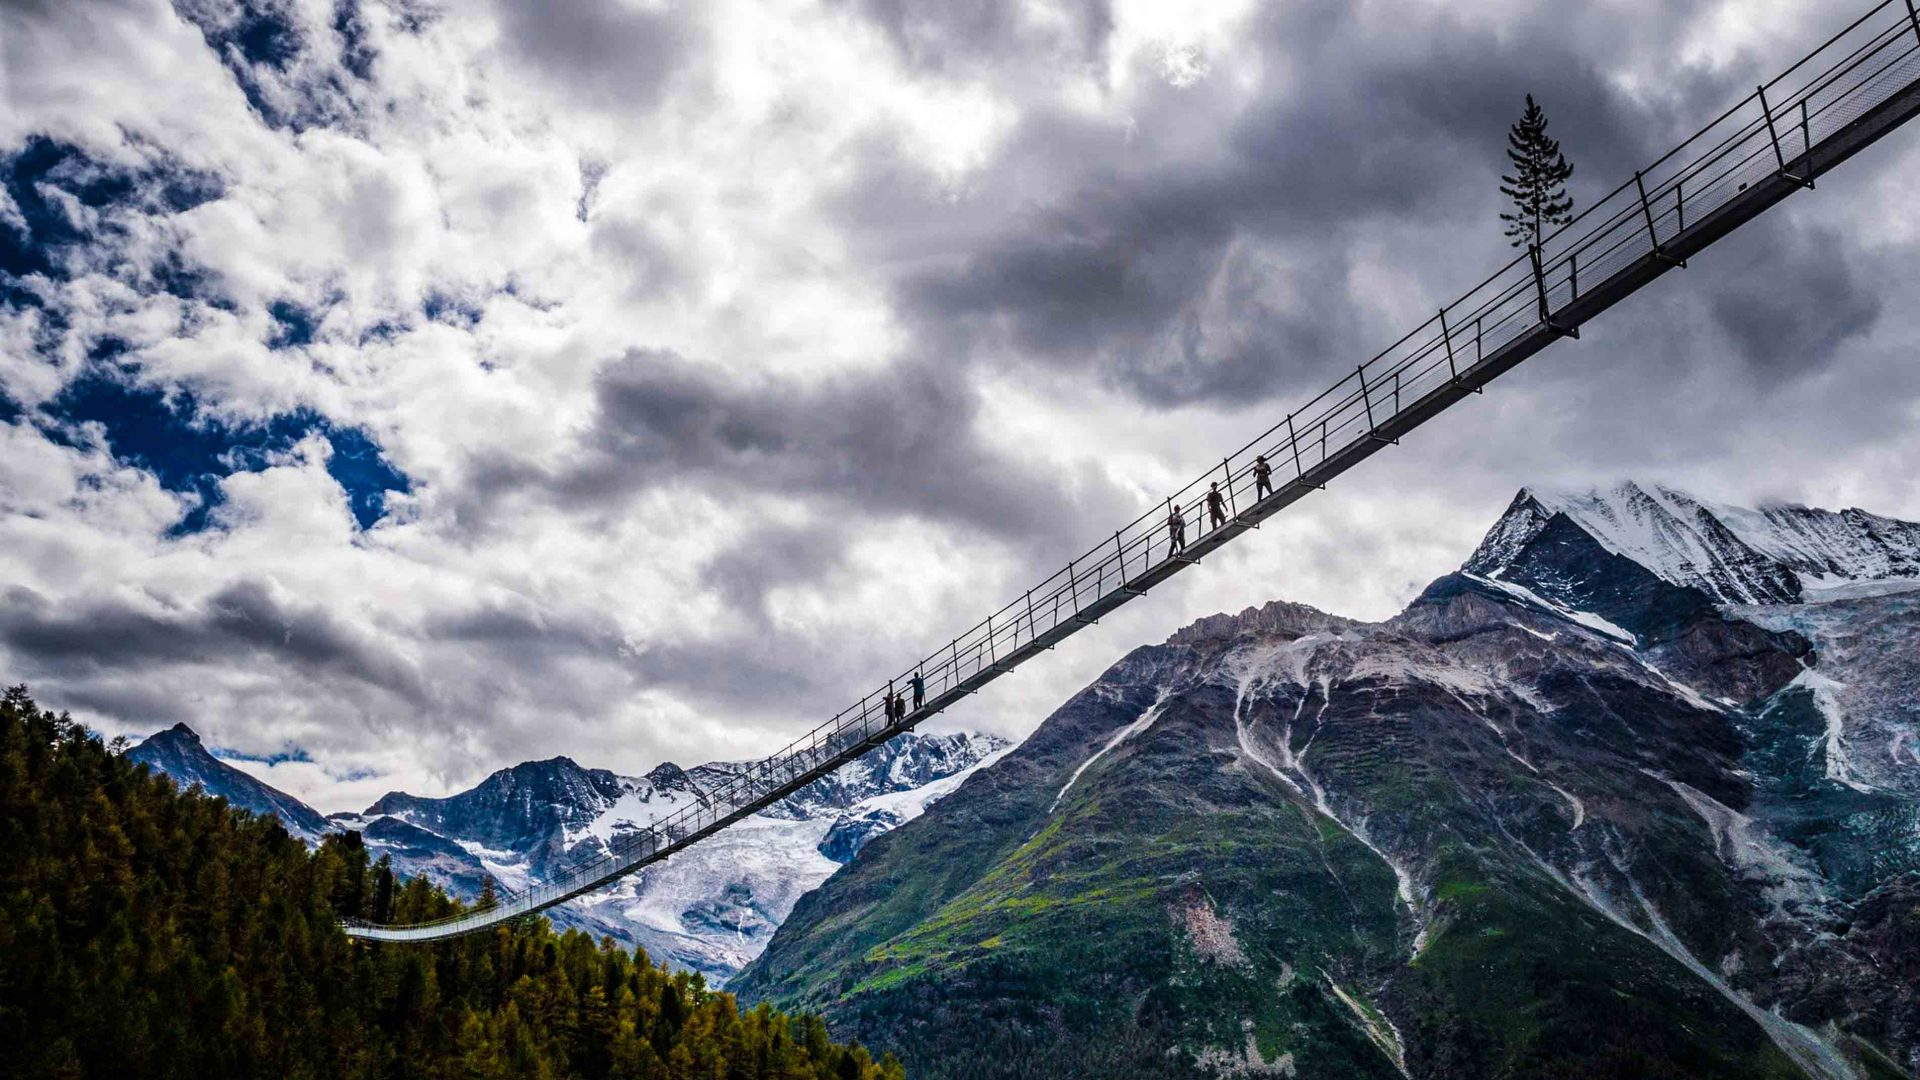 News wrap: World's longest suspension bridge, police fake Everest climb, eclipse fever hits and more